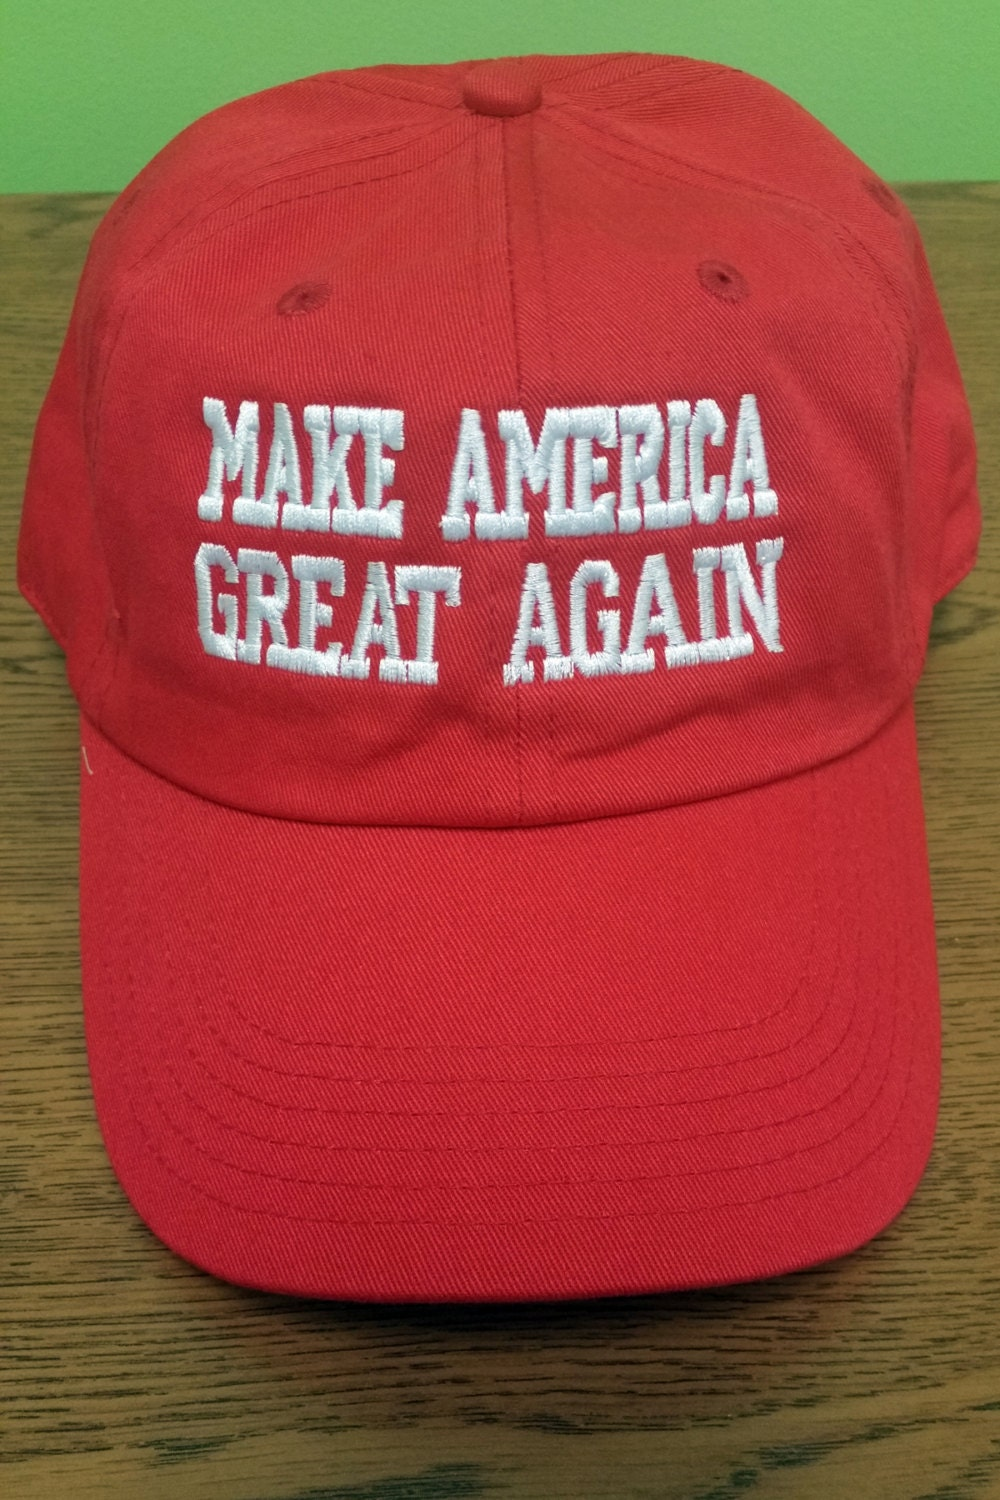 how to make a hat new again